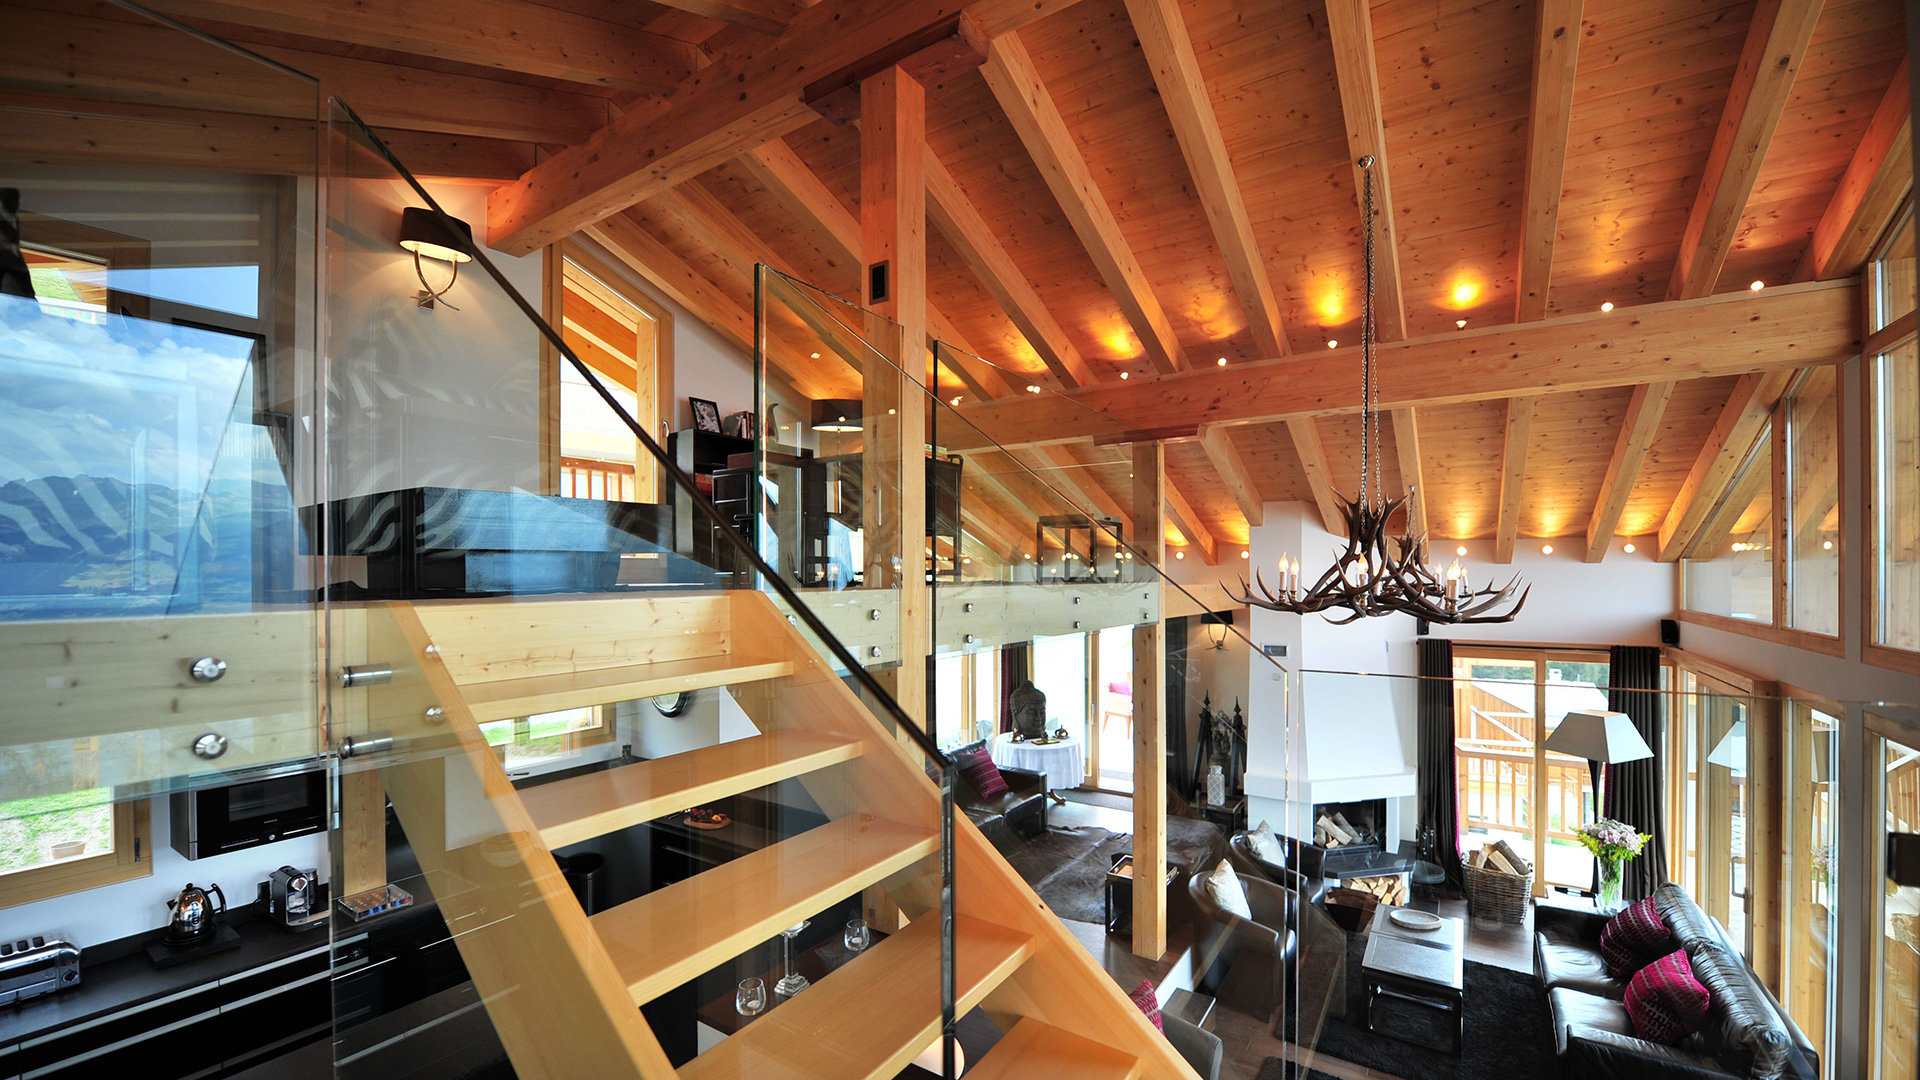 Chalet Endymion Apartments, Switzerland